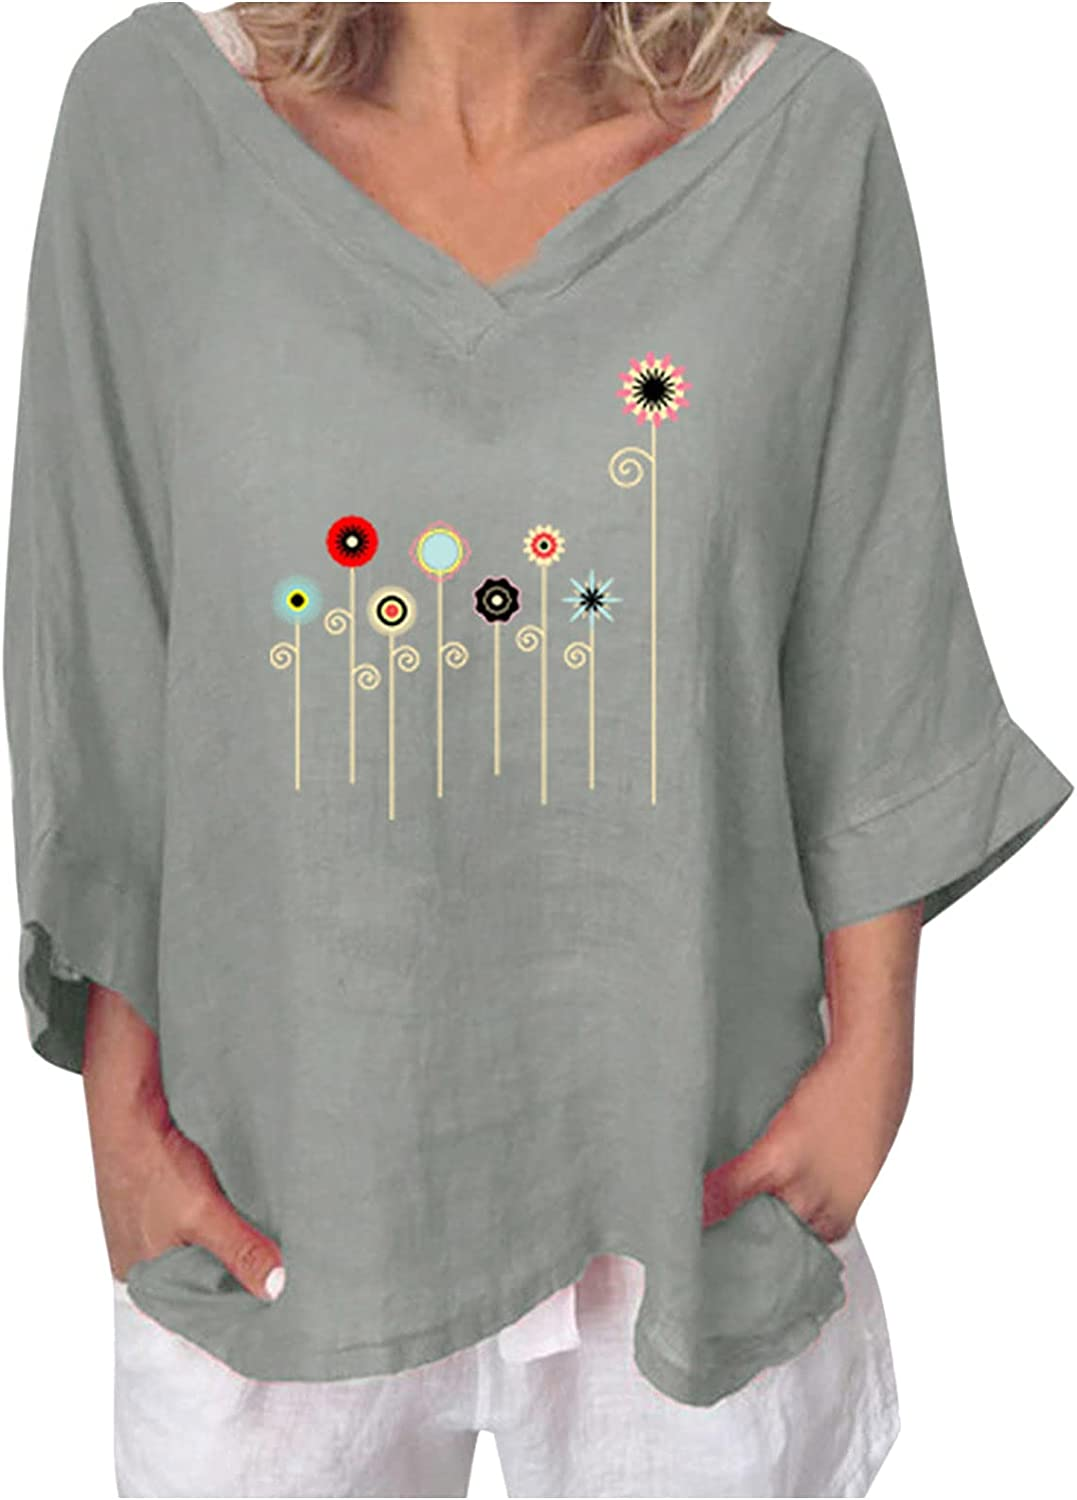 UBST Women's Cute Graphic Long Sleeve T-Shirt Loose Blouses,Casual Deep V Neck Comfy Cotton Tunic Tops 2021 Fall